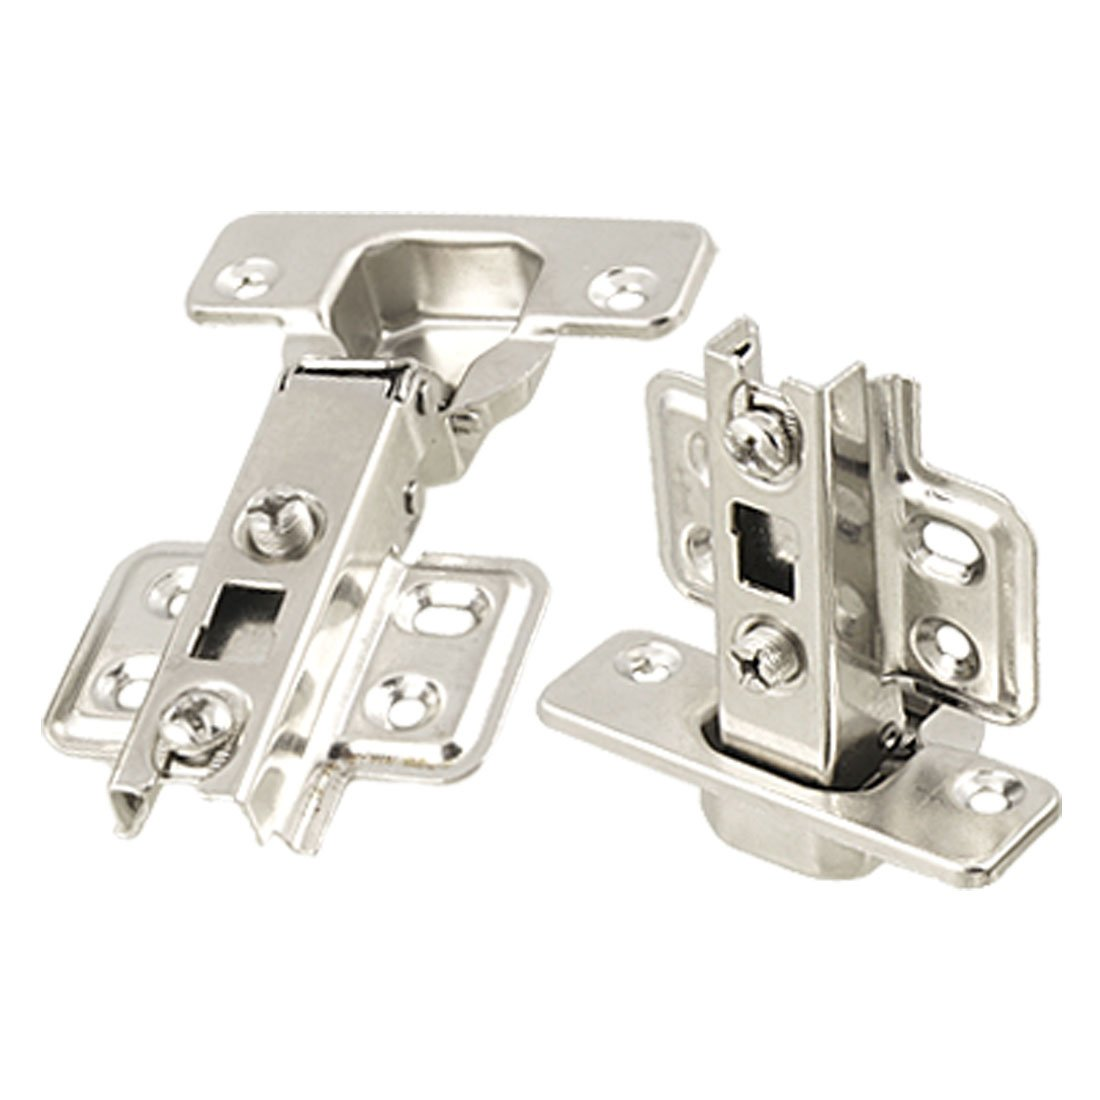 uxcell online shopping A11112500ux0531 Stainless Steel 2021 spring and summer new Hinge Cabinet Door Concea